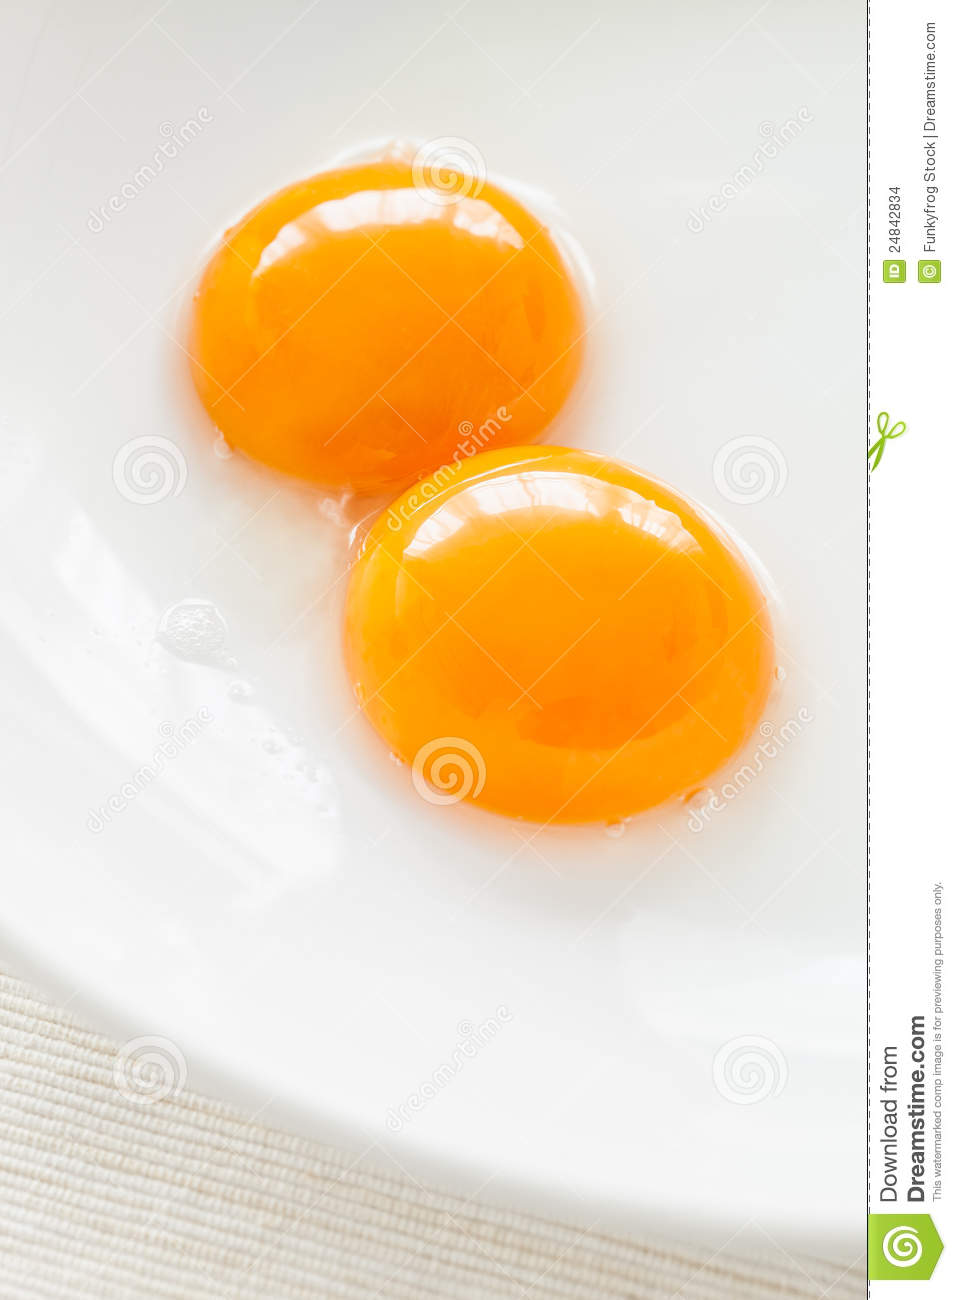 Clipart yolk clipart royalty free Related Keywords & Suggestions for Yolk Clipart clipart royalty free